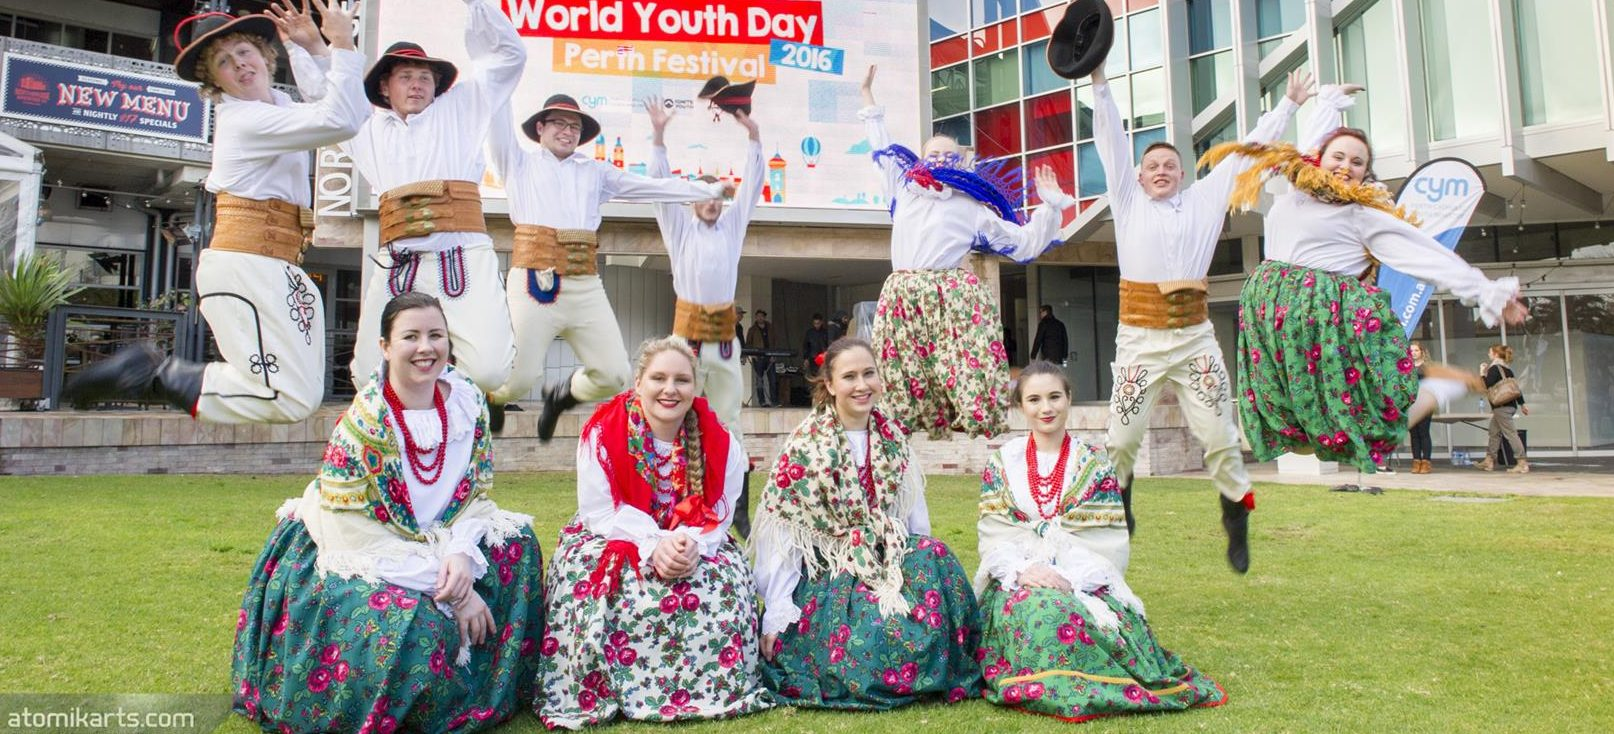 WYD Local event photo